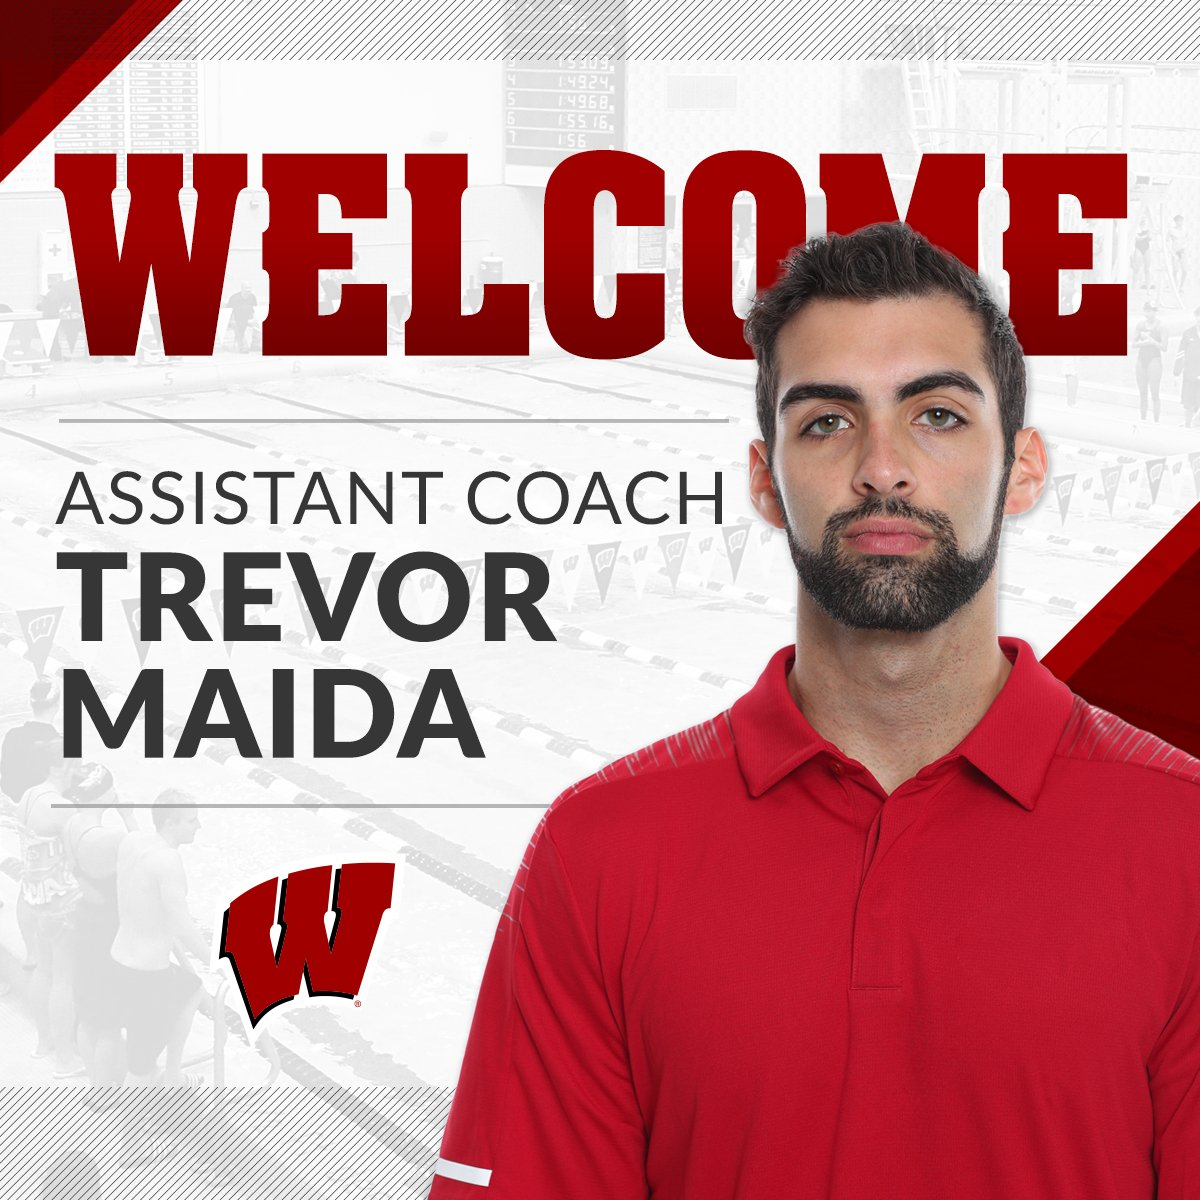 Trevor Maida Joins Wisconsin Swimming and Diving Staff as Assistant - Swimming World News